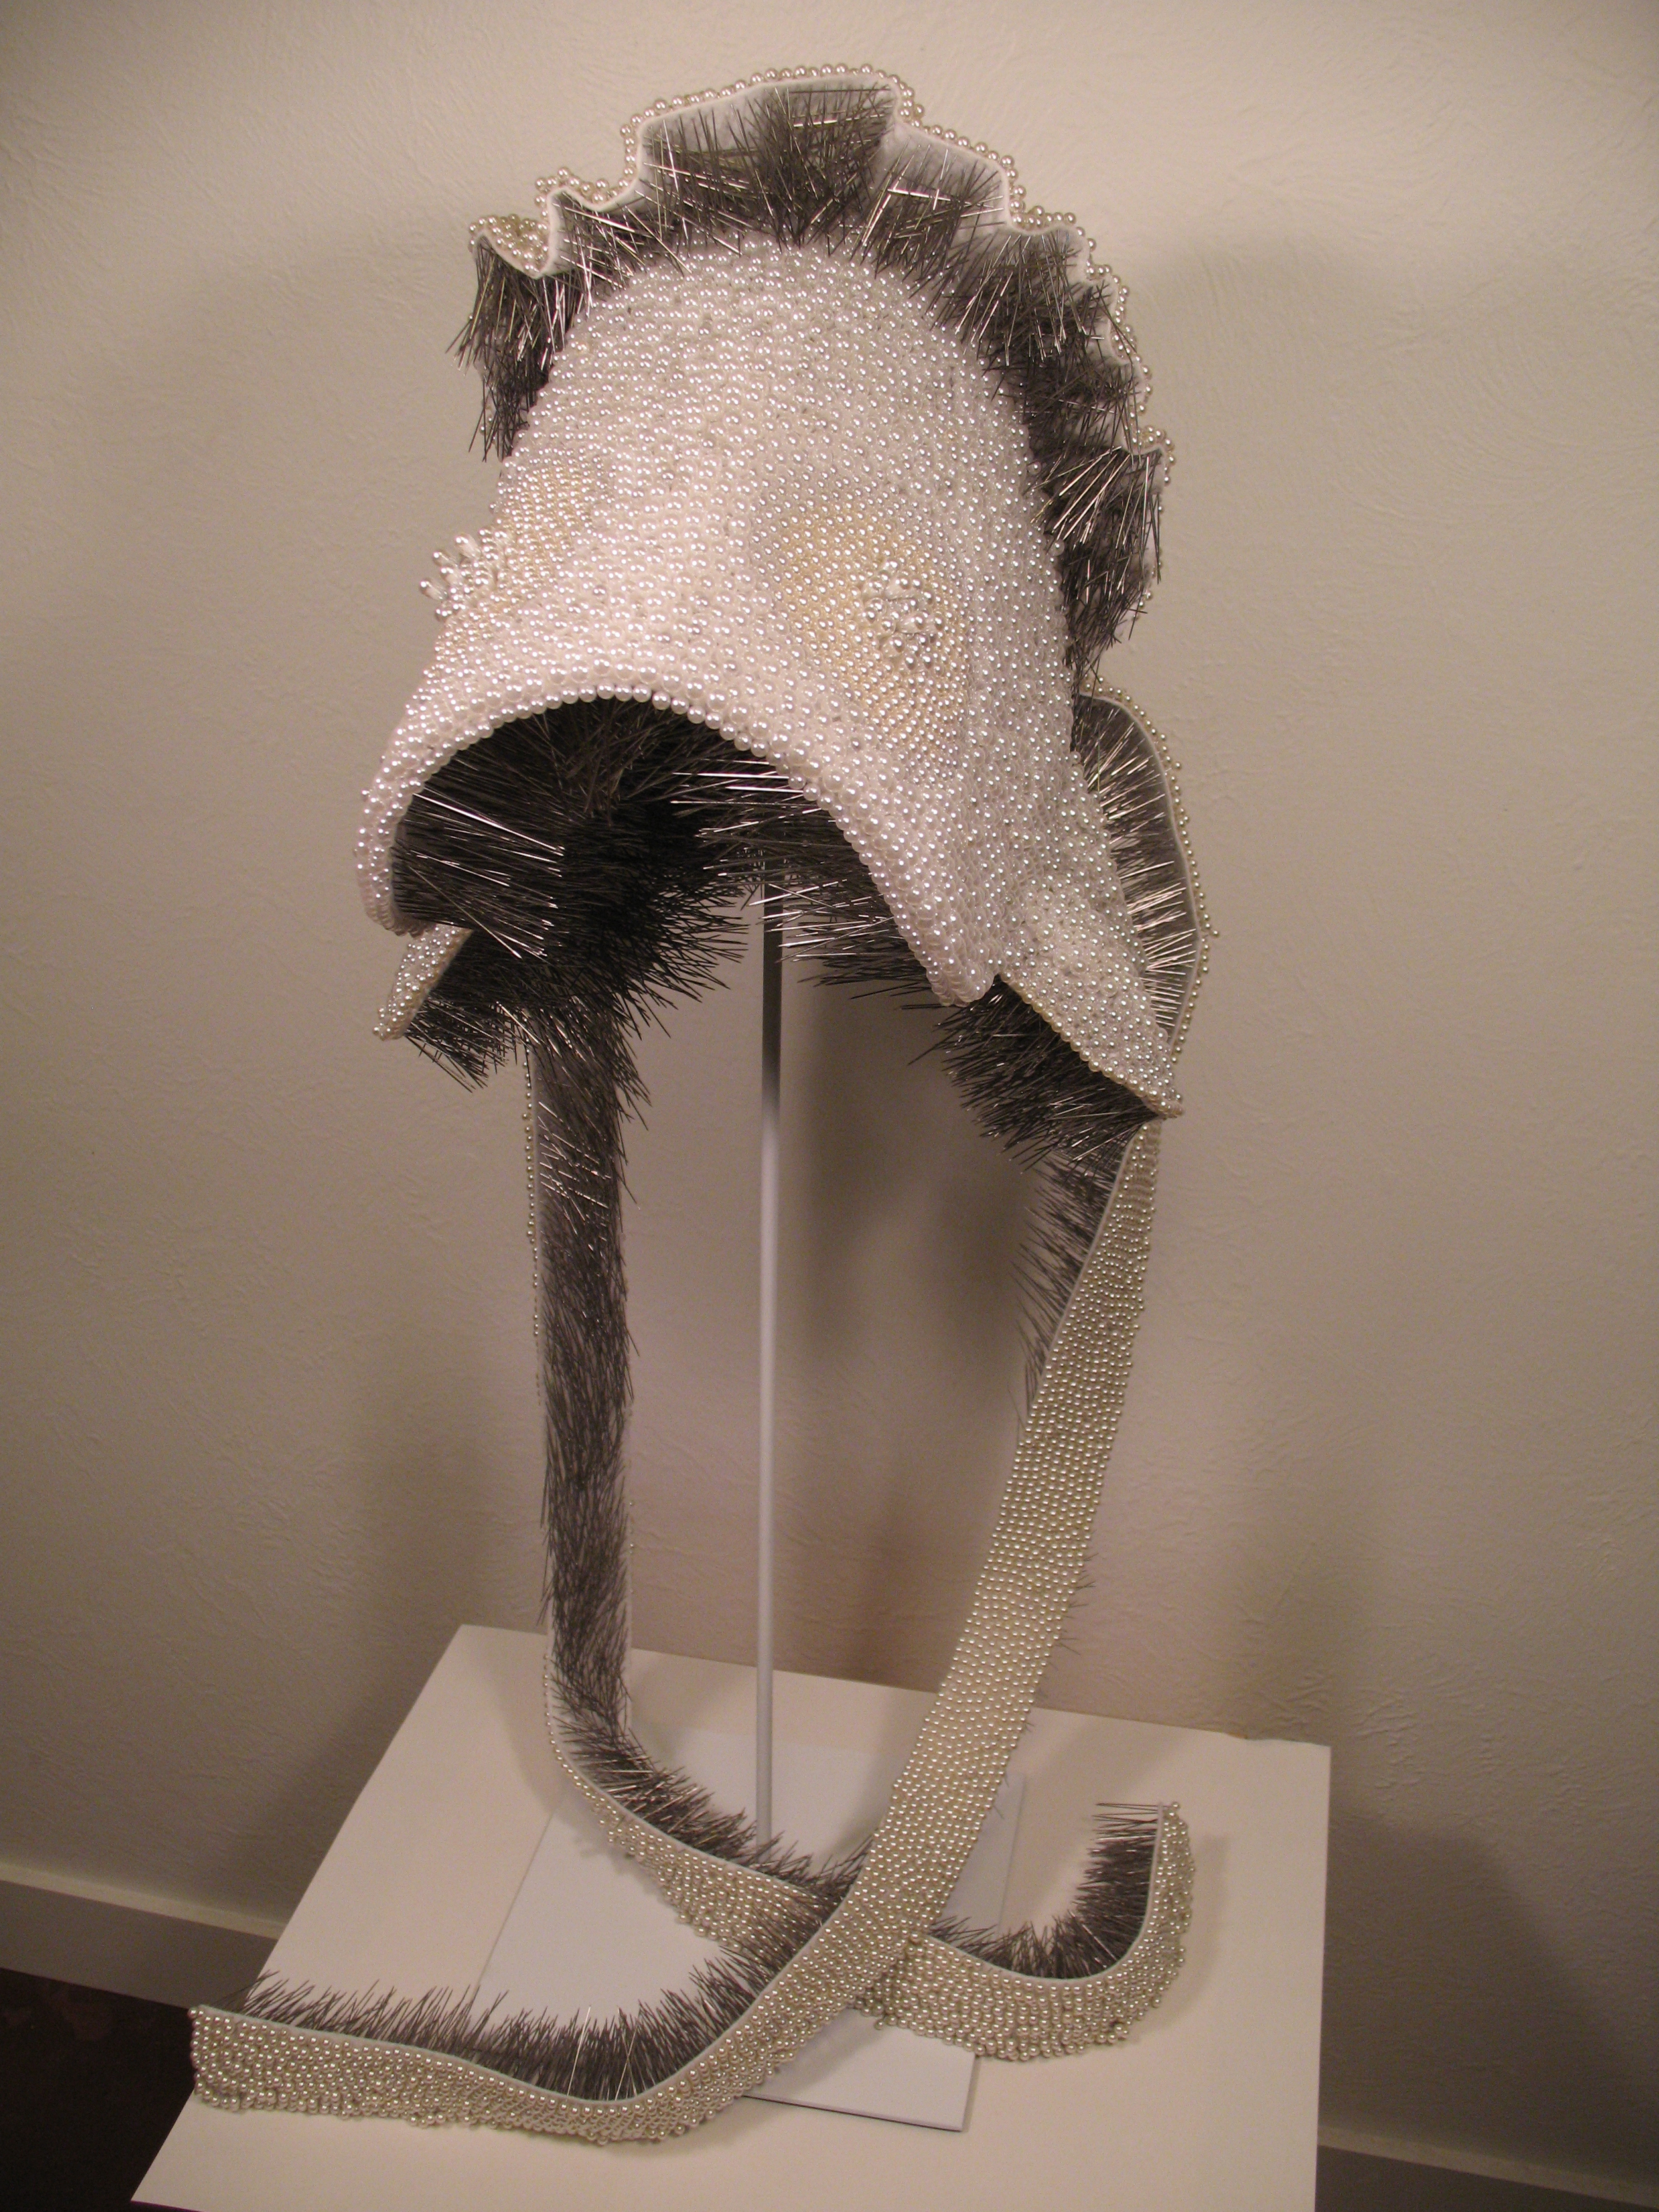 Seer Bonnet III  14,164 pearl corsage pins and fabric, 2008